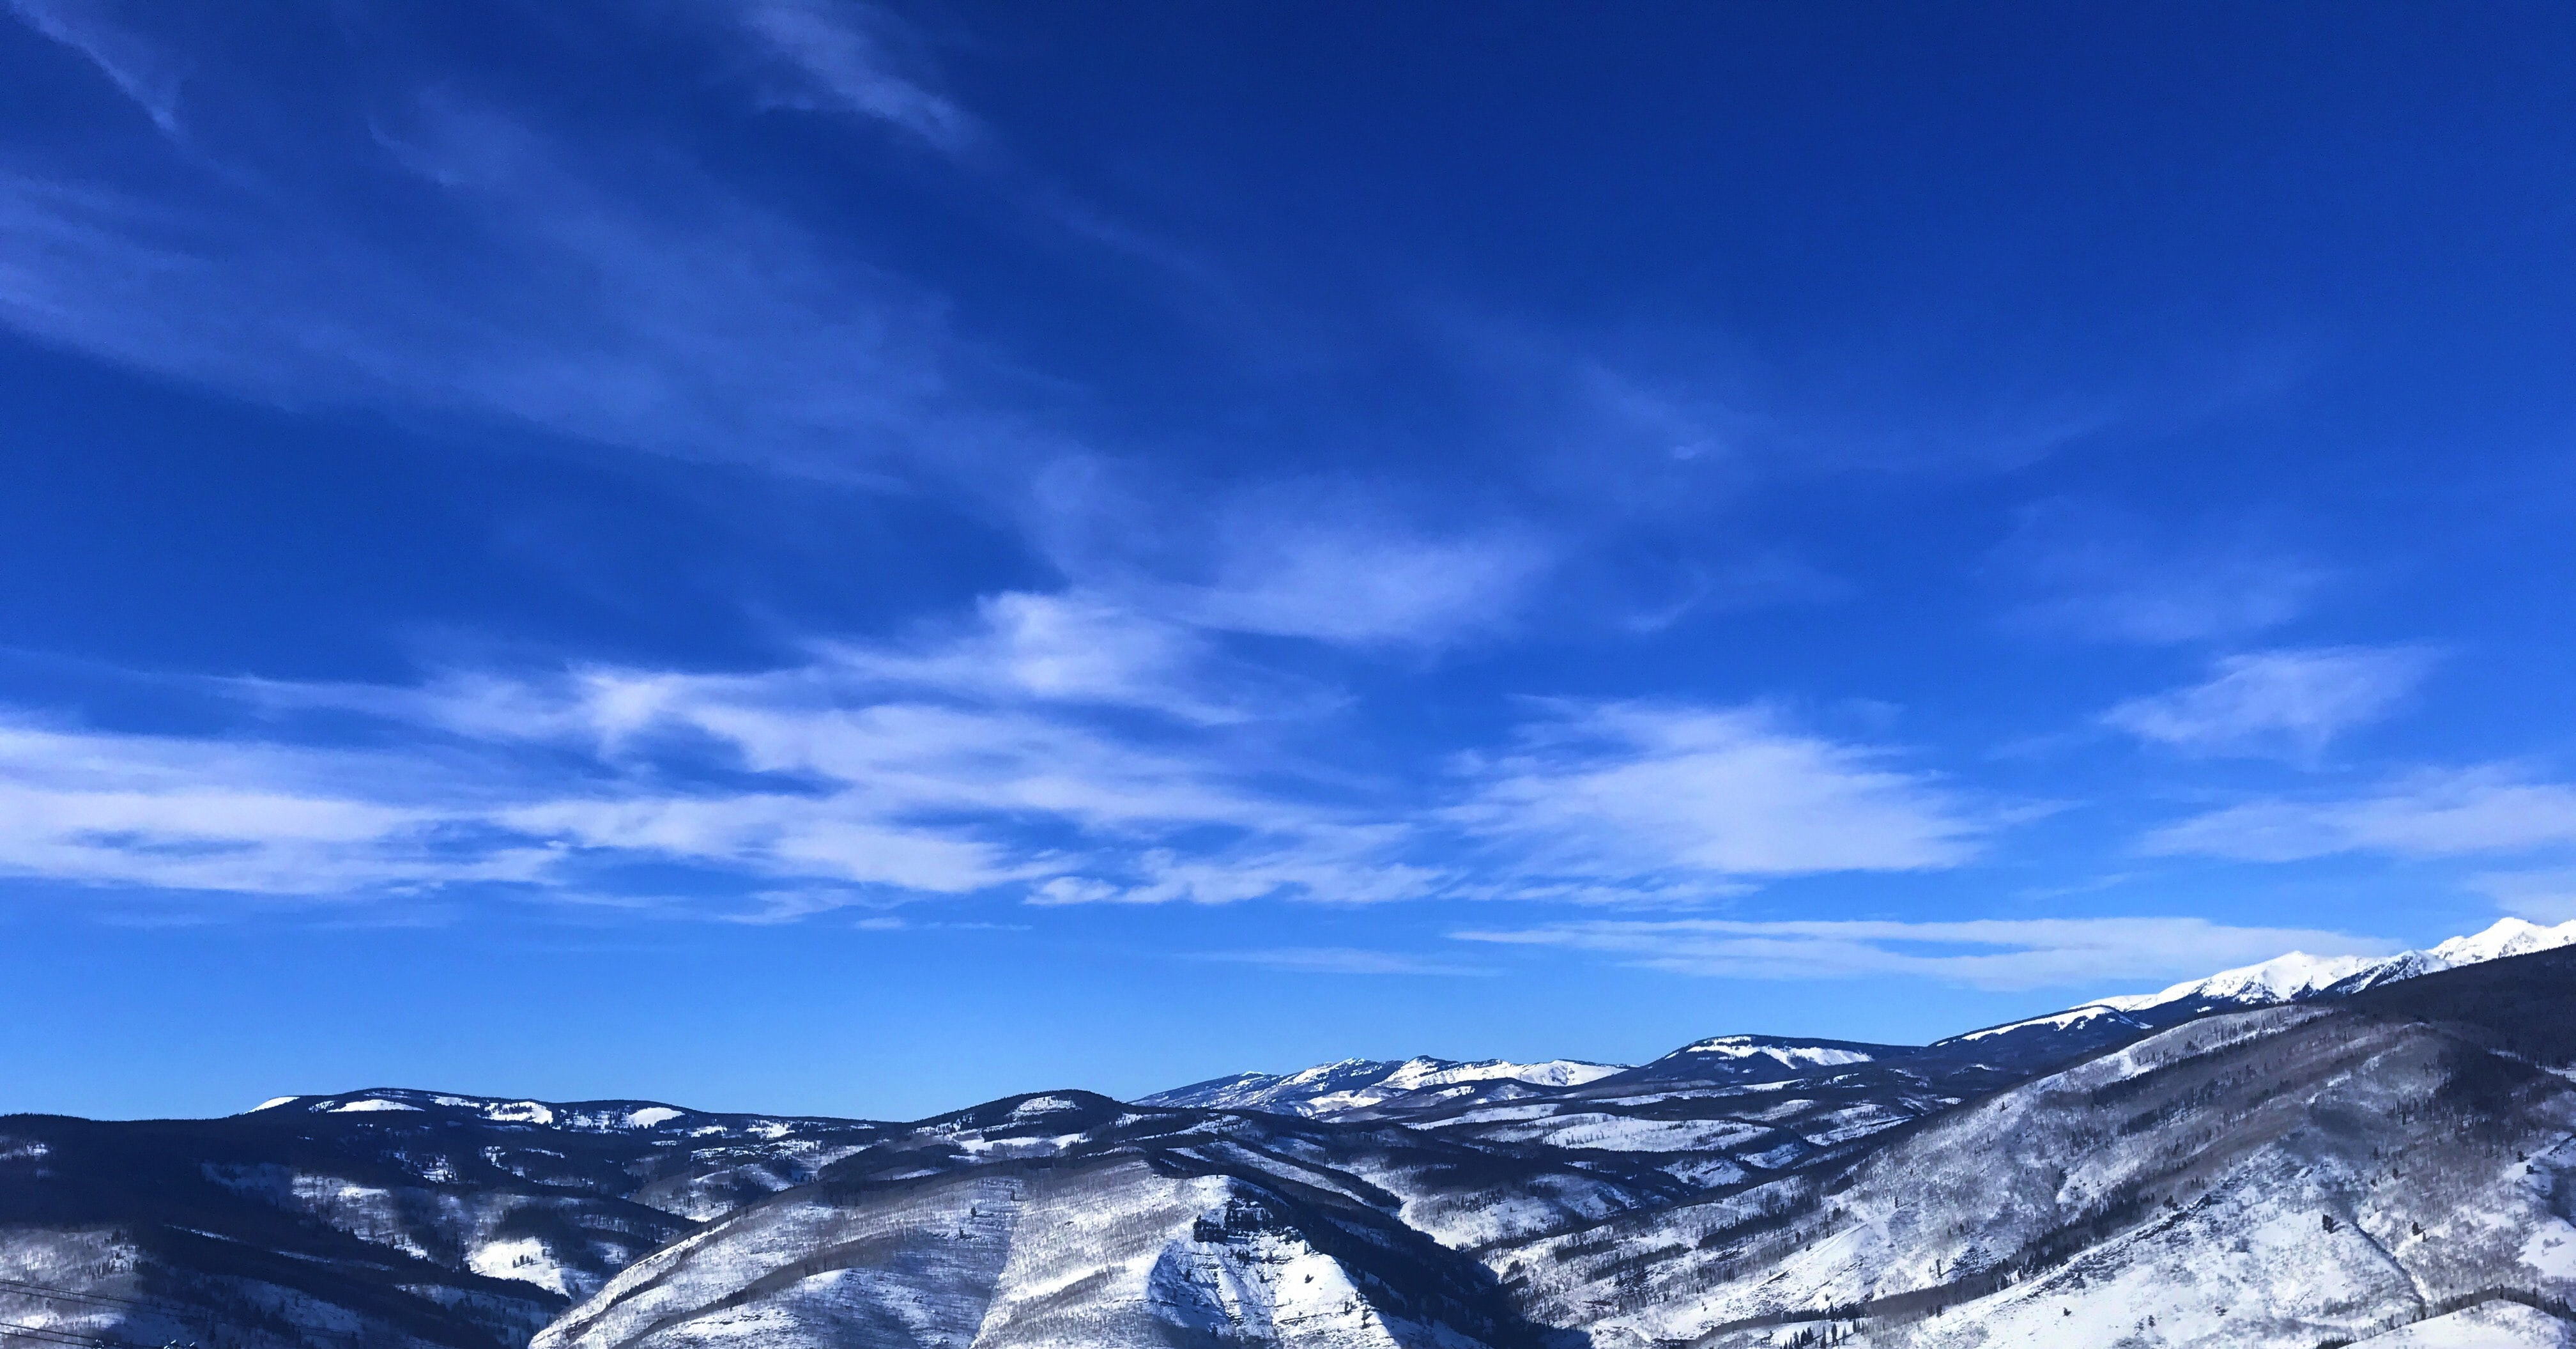 snow capped mountains under blue sky